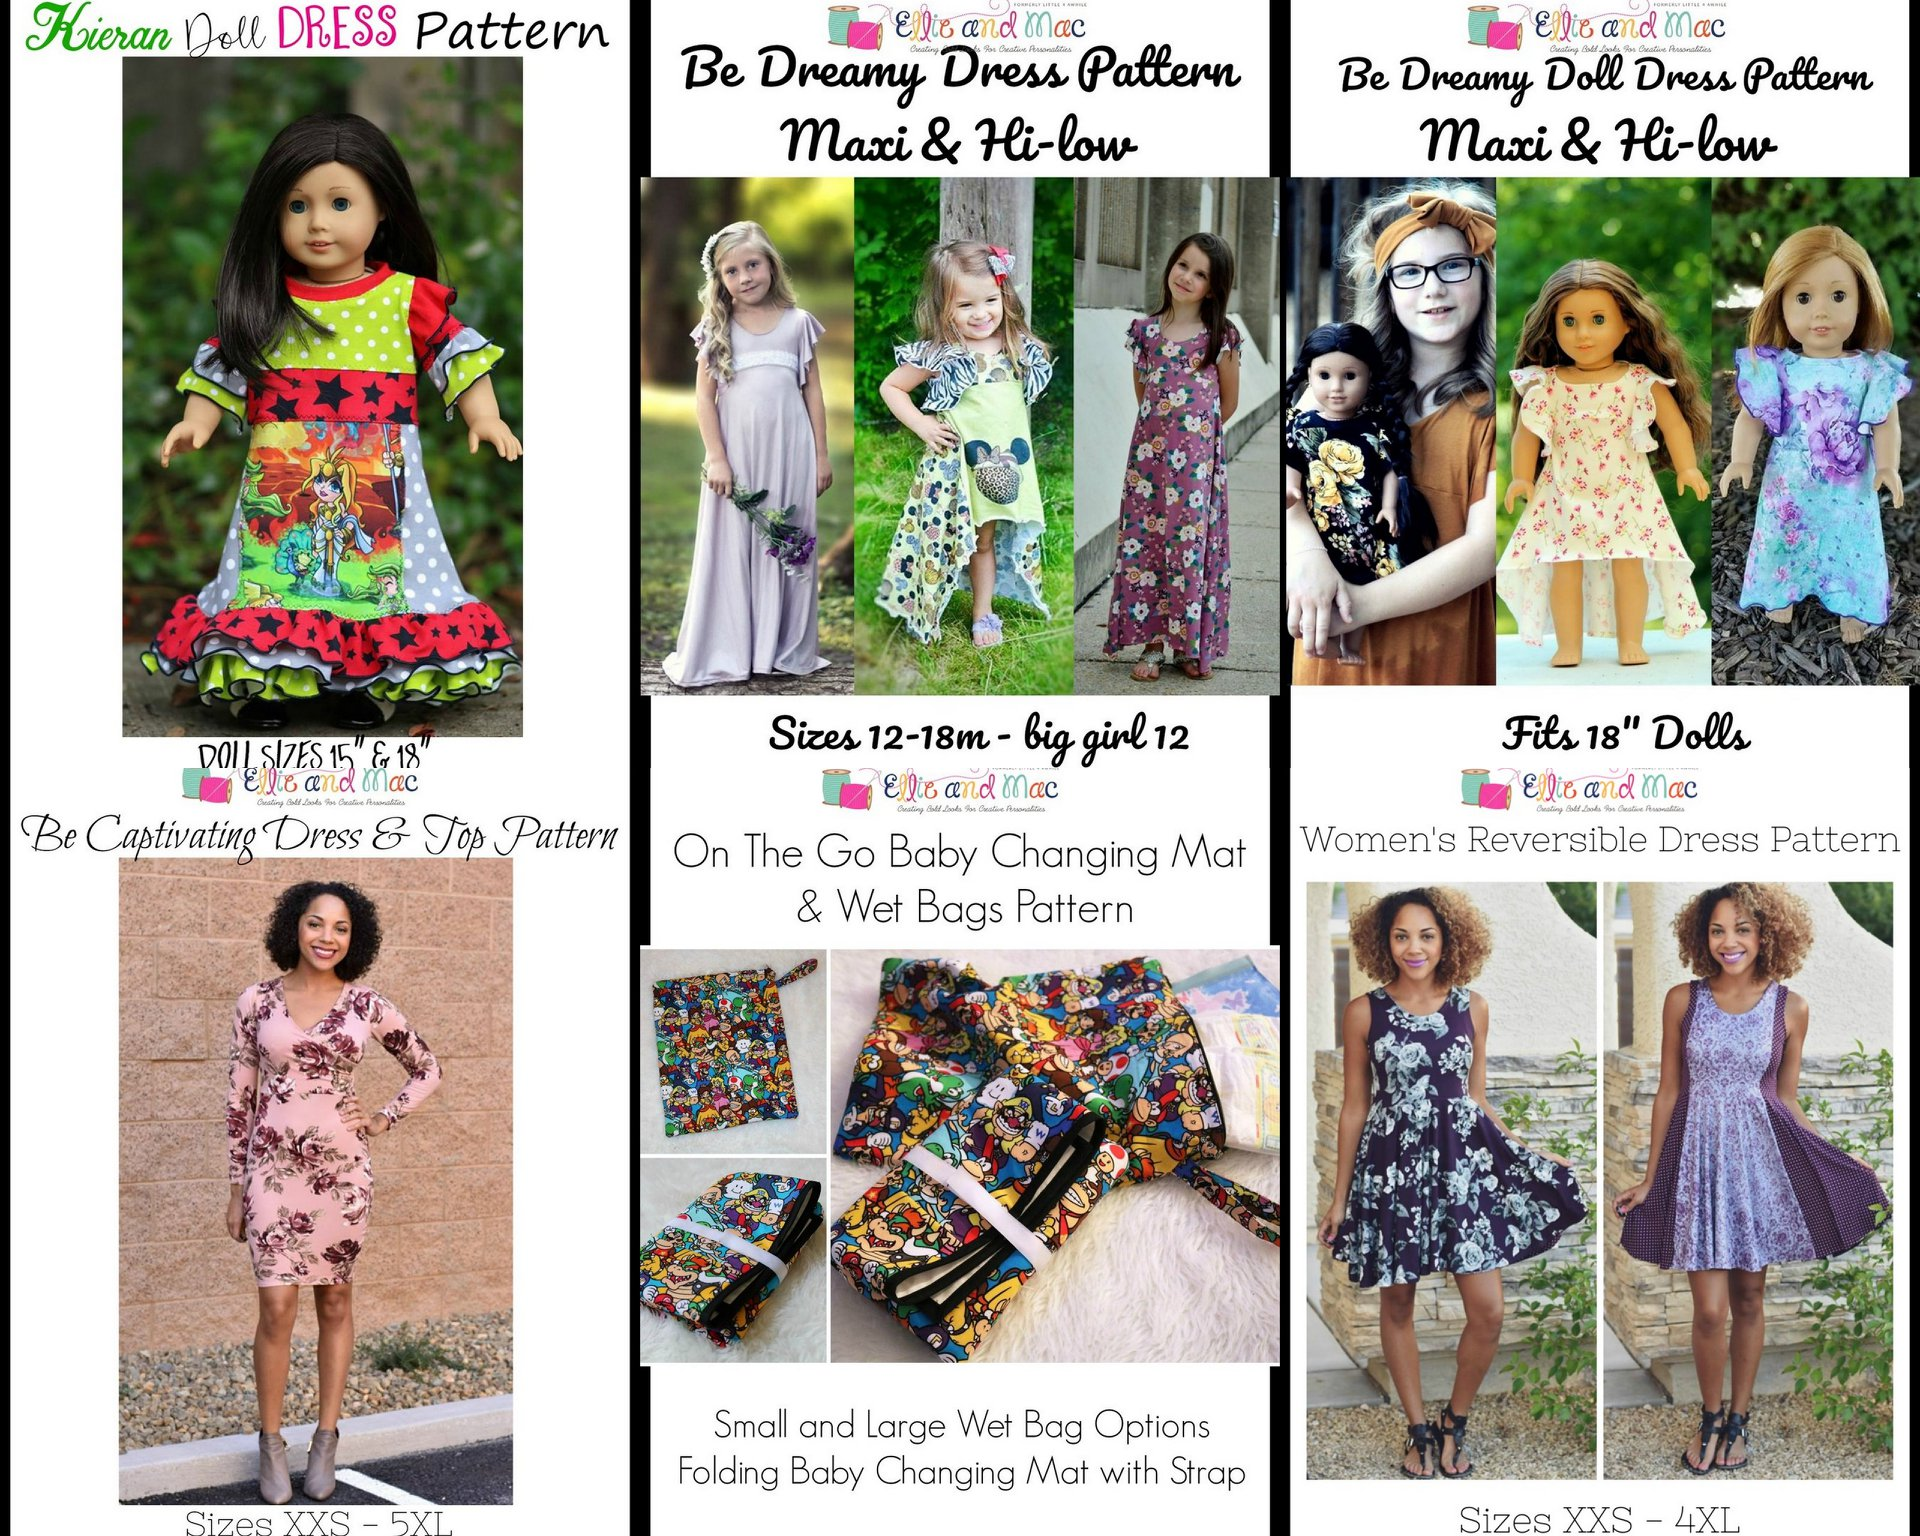 Ellie and Mac Wacky Wednesday $1 Sewing Patterns 11_21